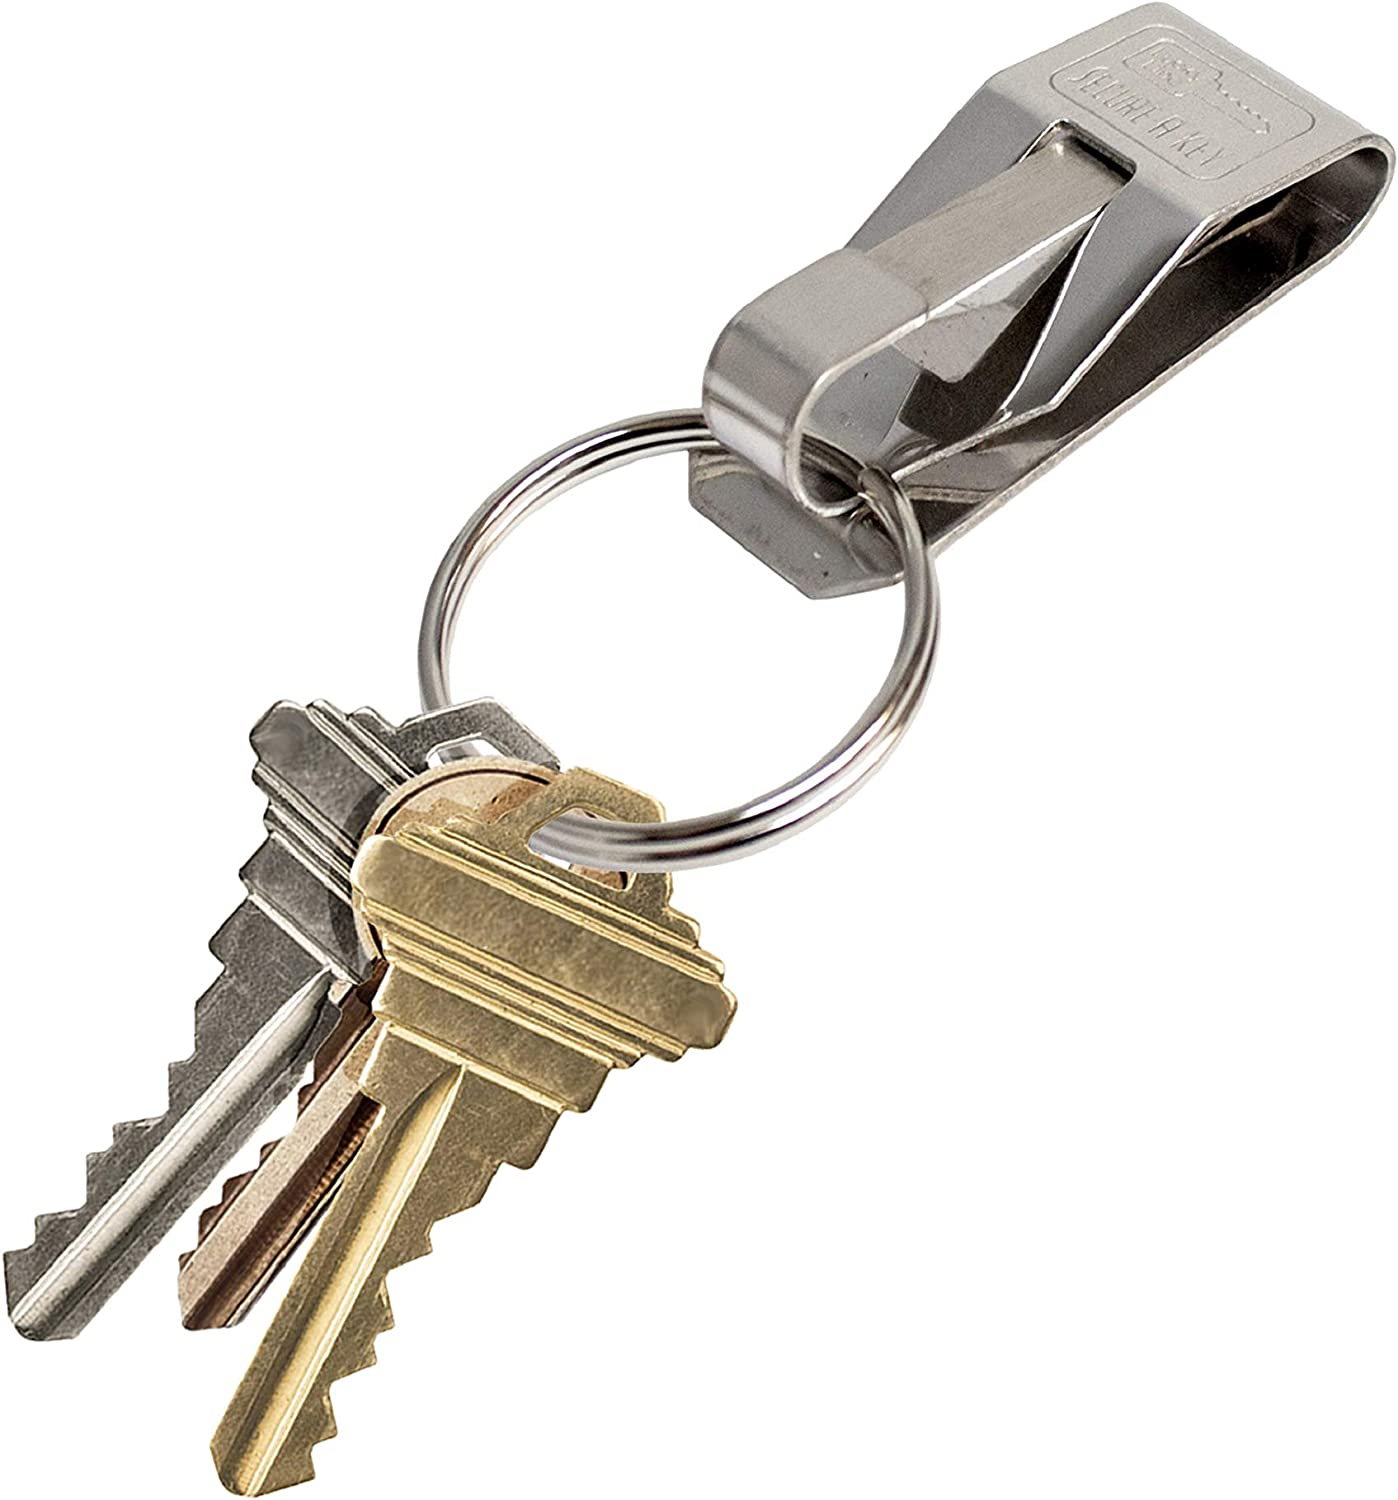 5 Per Pack, for Wide Belts 404005 Clip ON Lucky Line TheOriginal Secure-A-Key